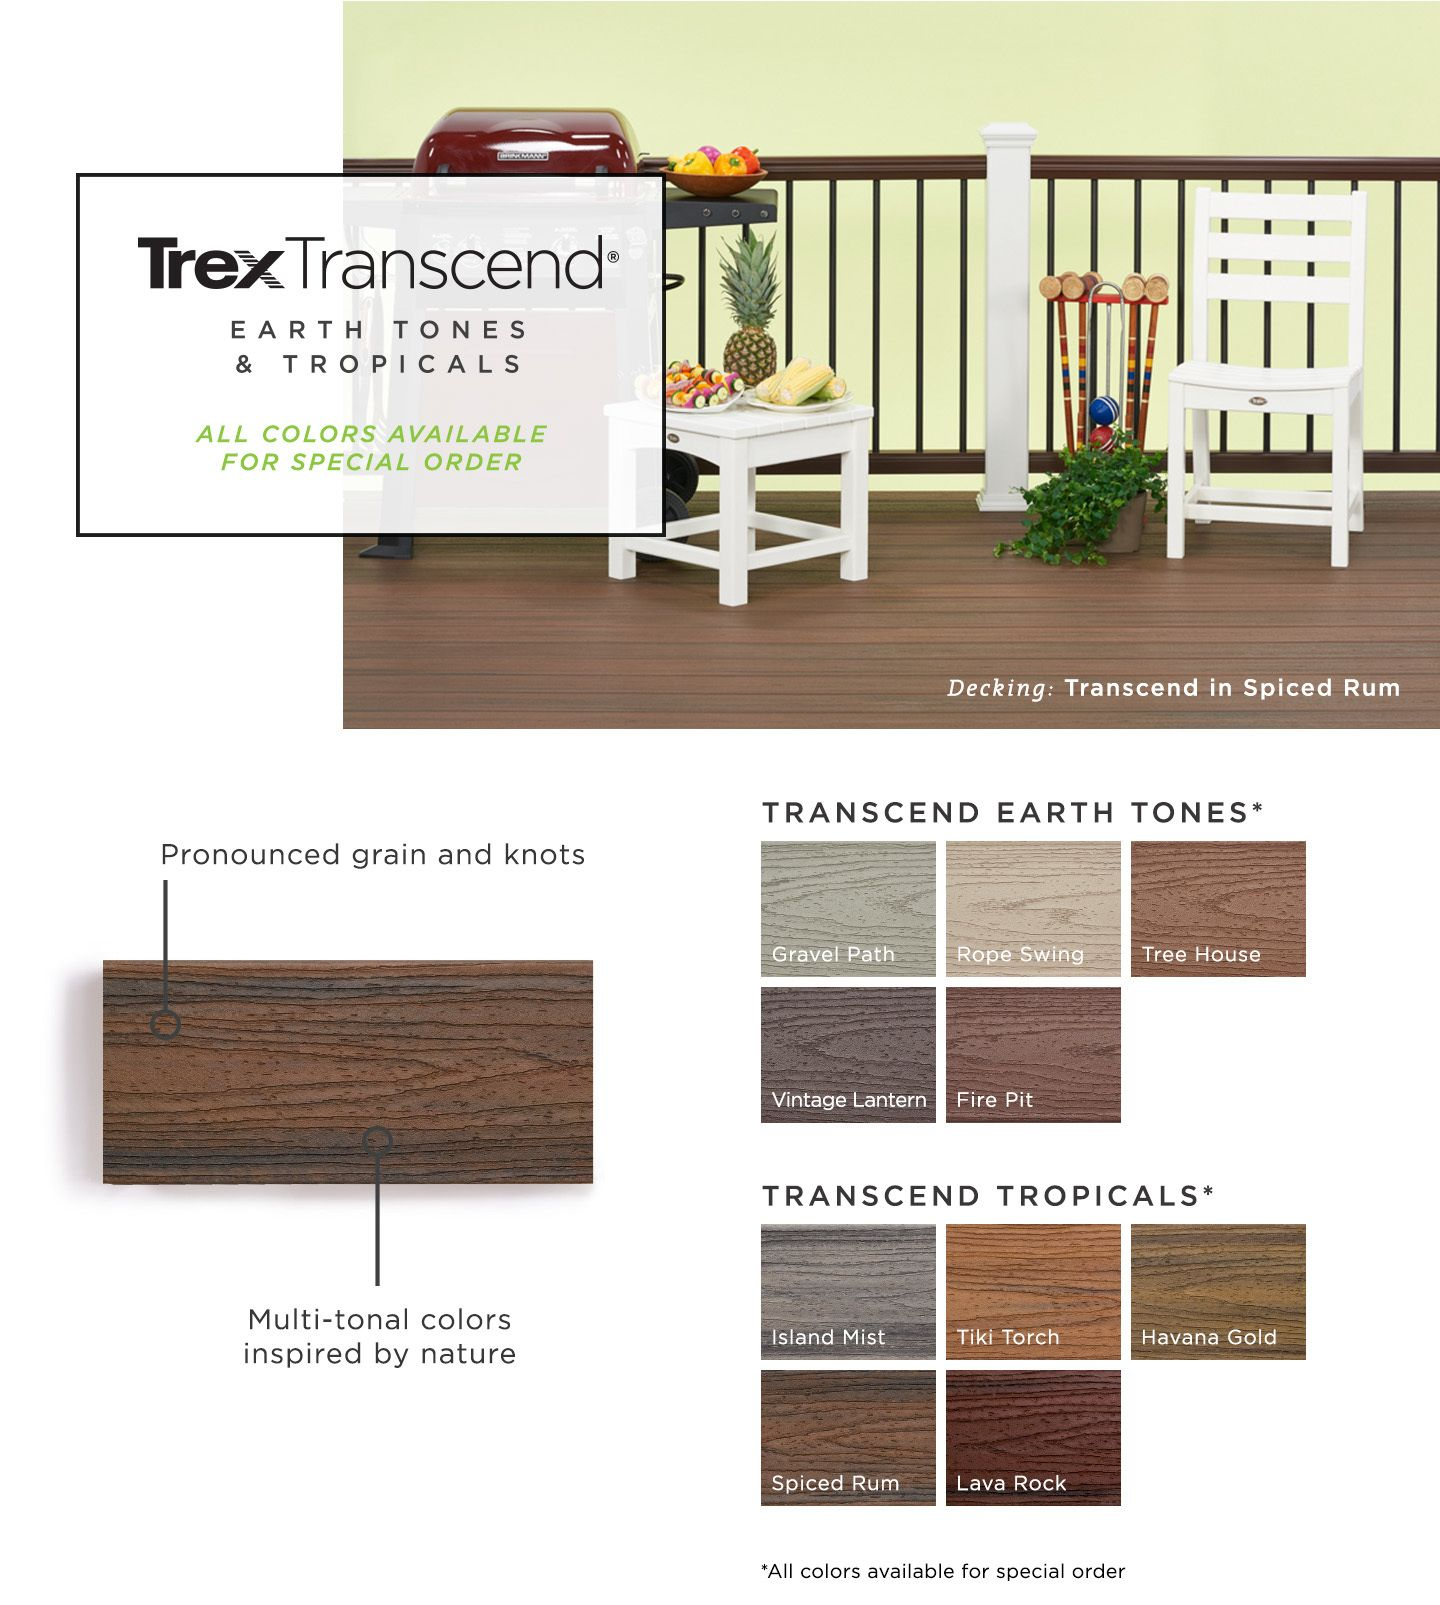 Trex Transcend 48 Pack 16 Ft Spiced Rum Grooved Composite Deck Board At Lowes Com In 2020 Composite Decking Composite Decking Boards Deck